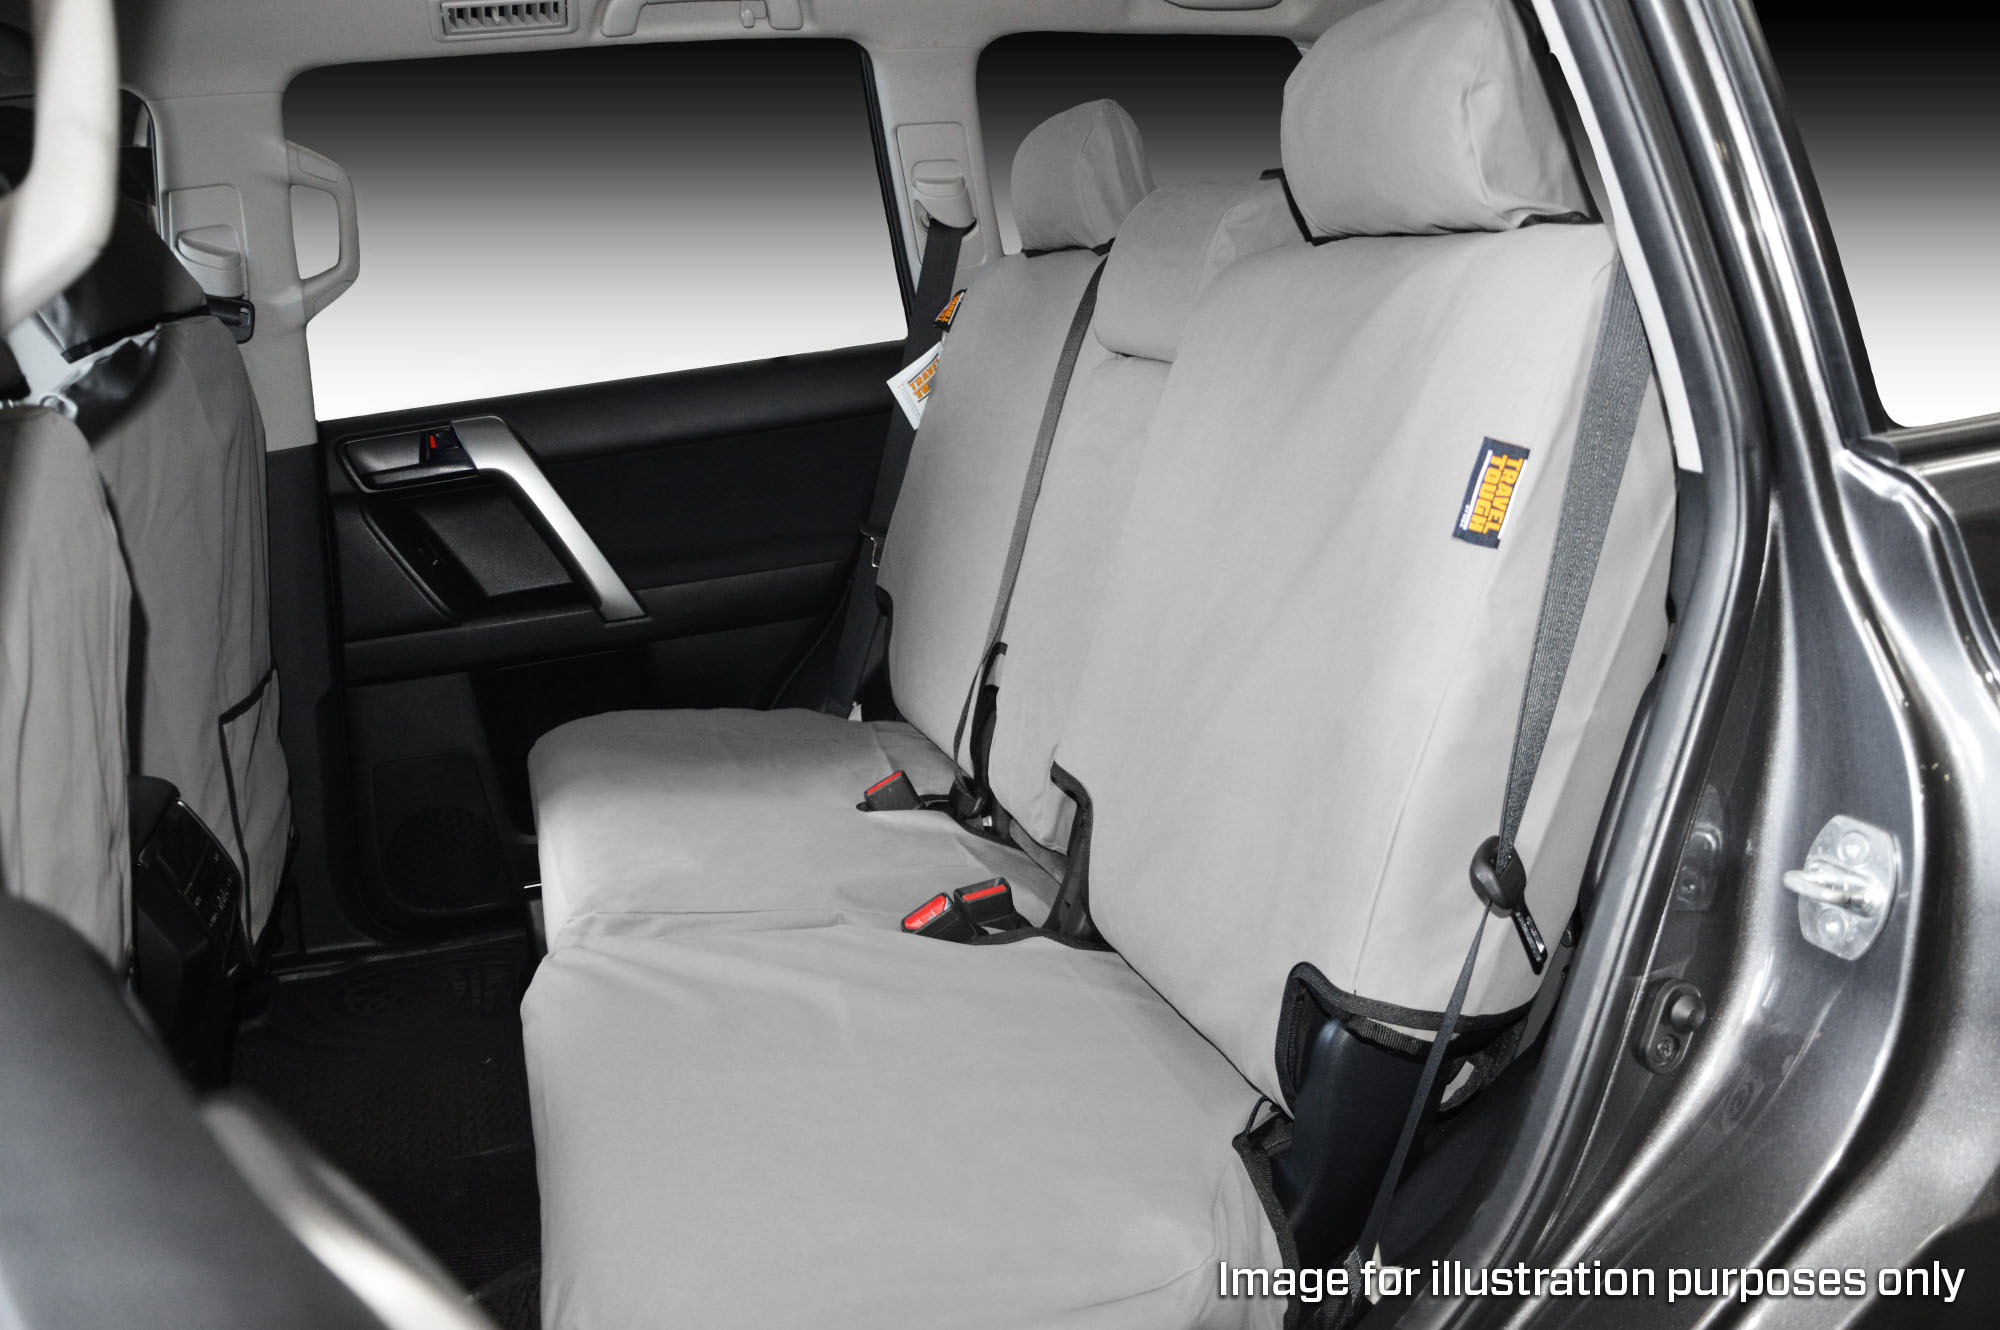 Swell Toyota Hilux Rear Dual Cab Bench 60 40 Split Seat Full Width Back With Fold Down Armrest And 3 X Headrests Travel Tough Msa 4X4 Accessories Uwap Interior Chair Design Uwaporg